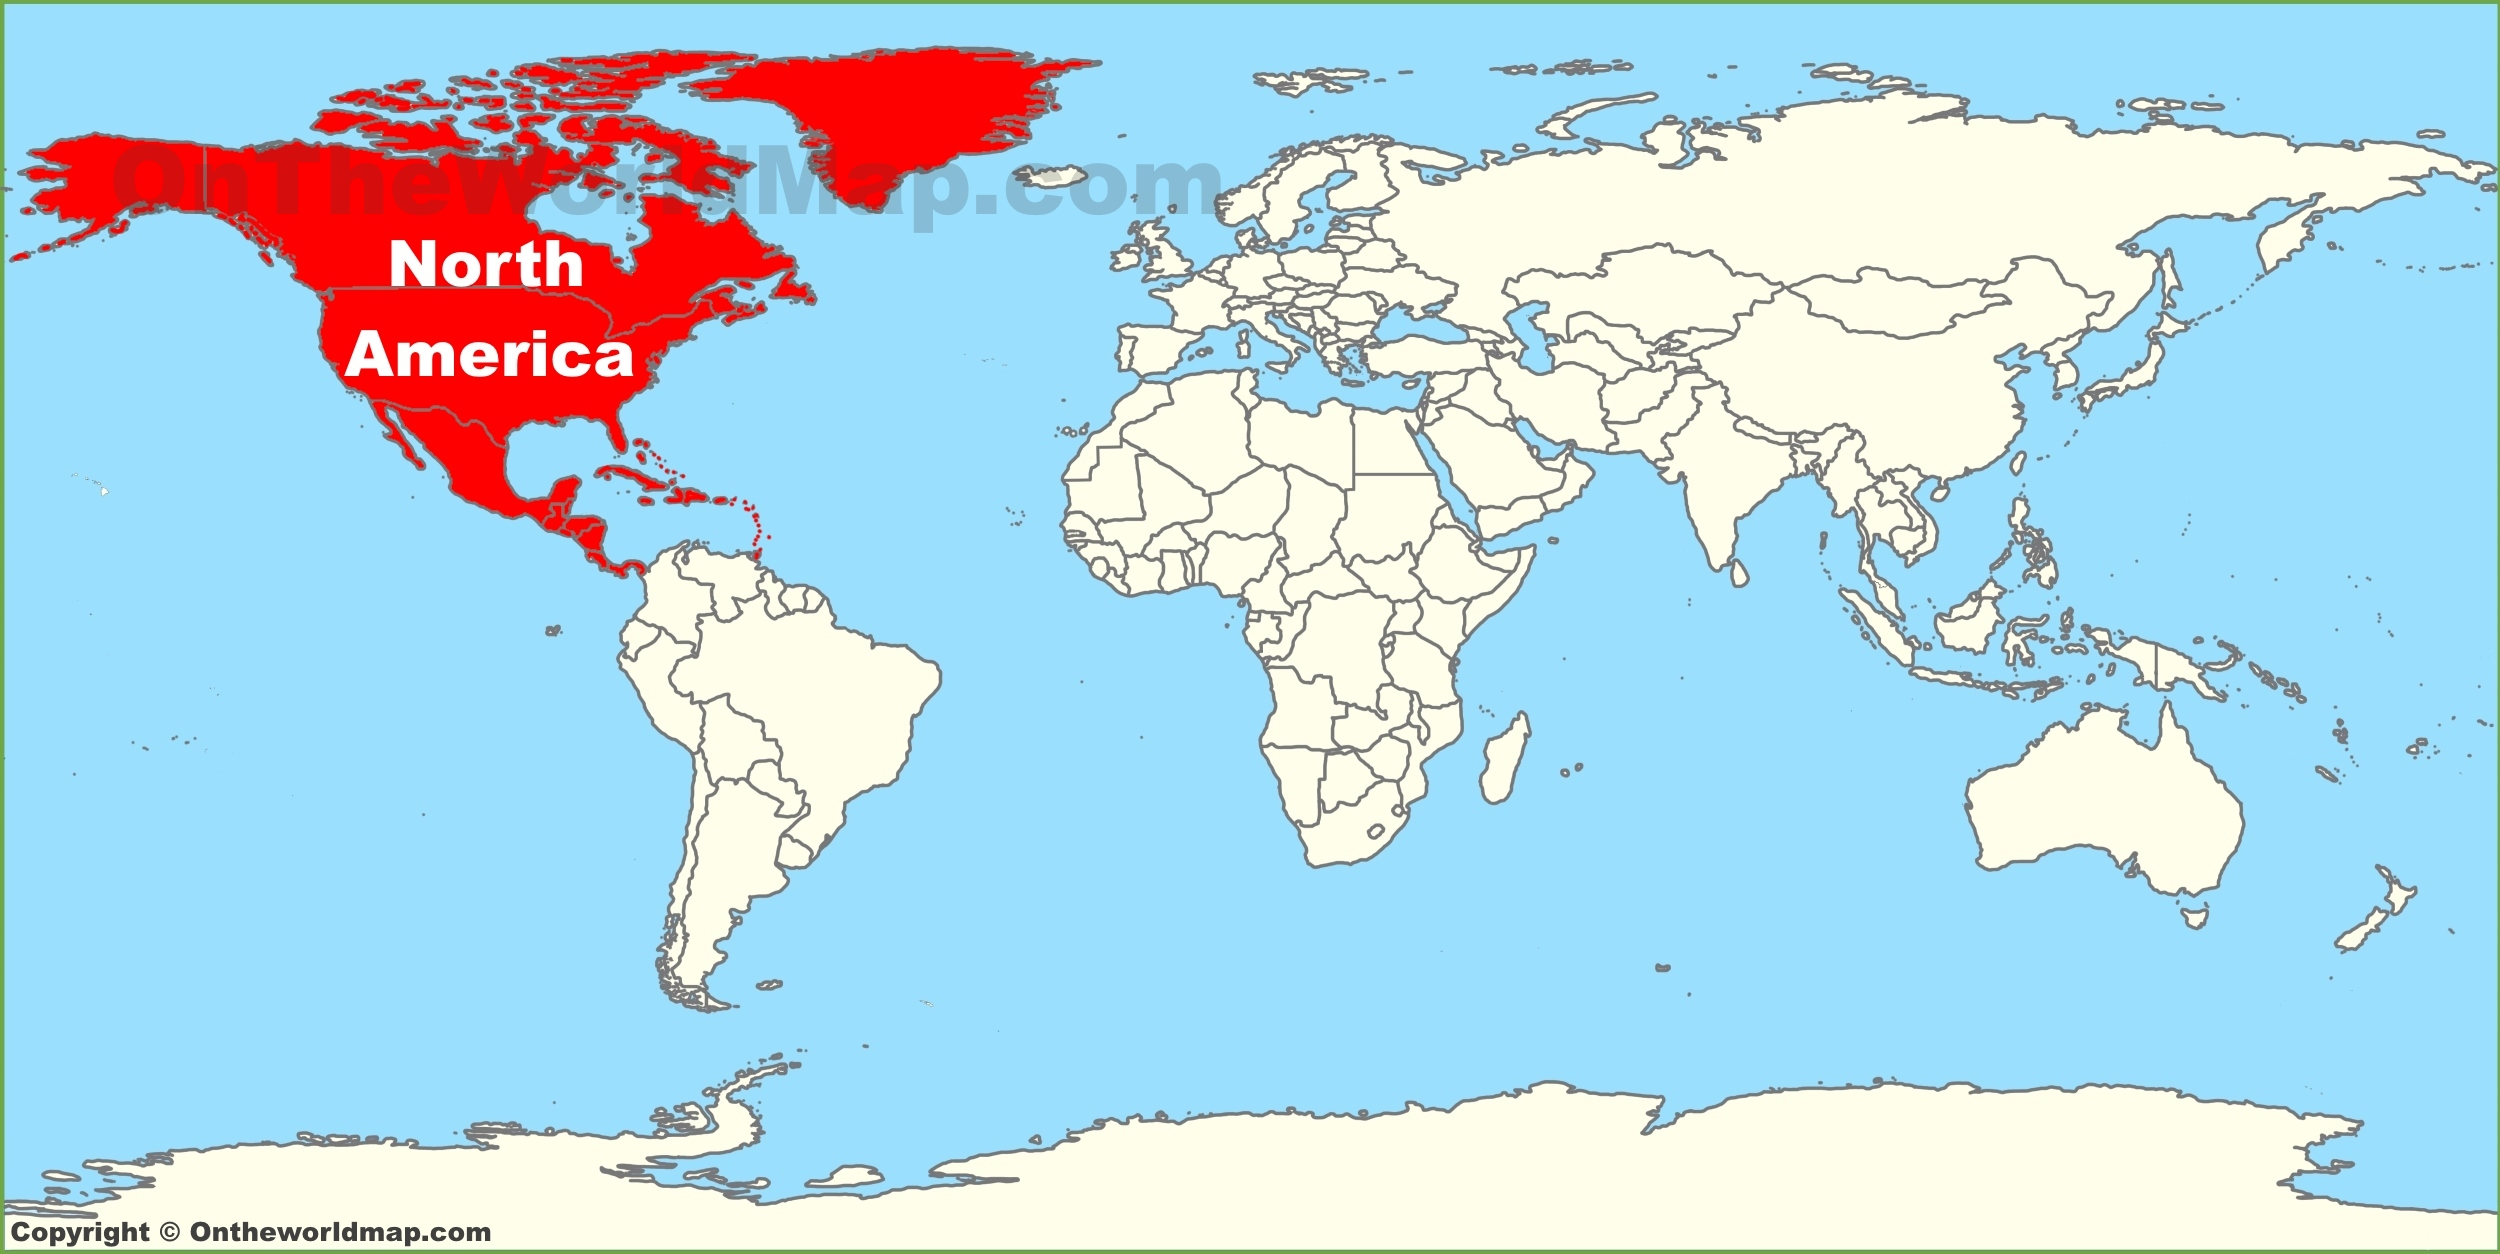 World Map Of North America North America location on the World Map